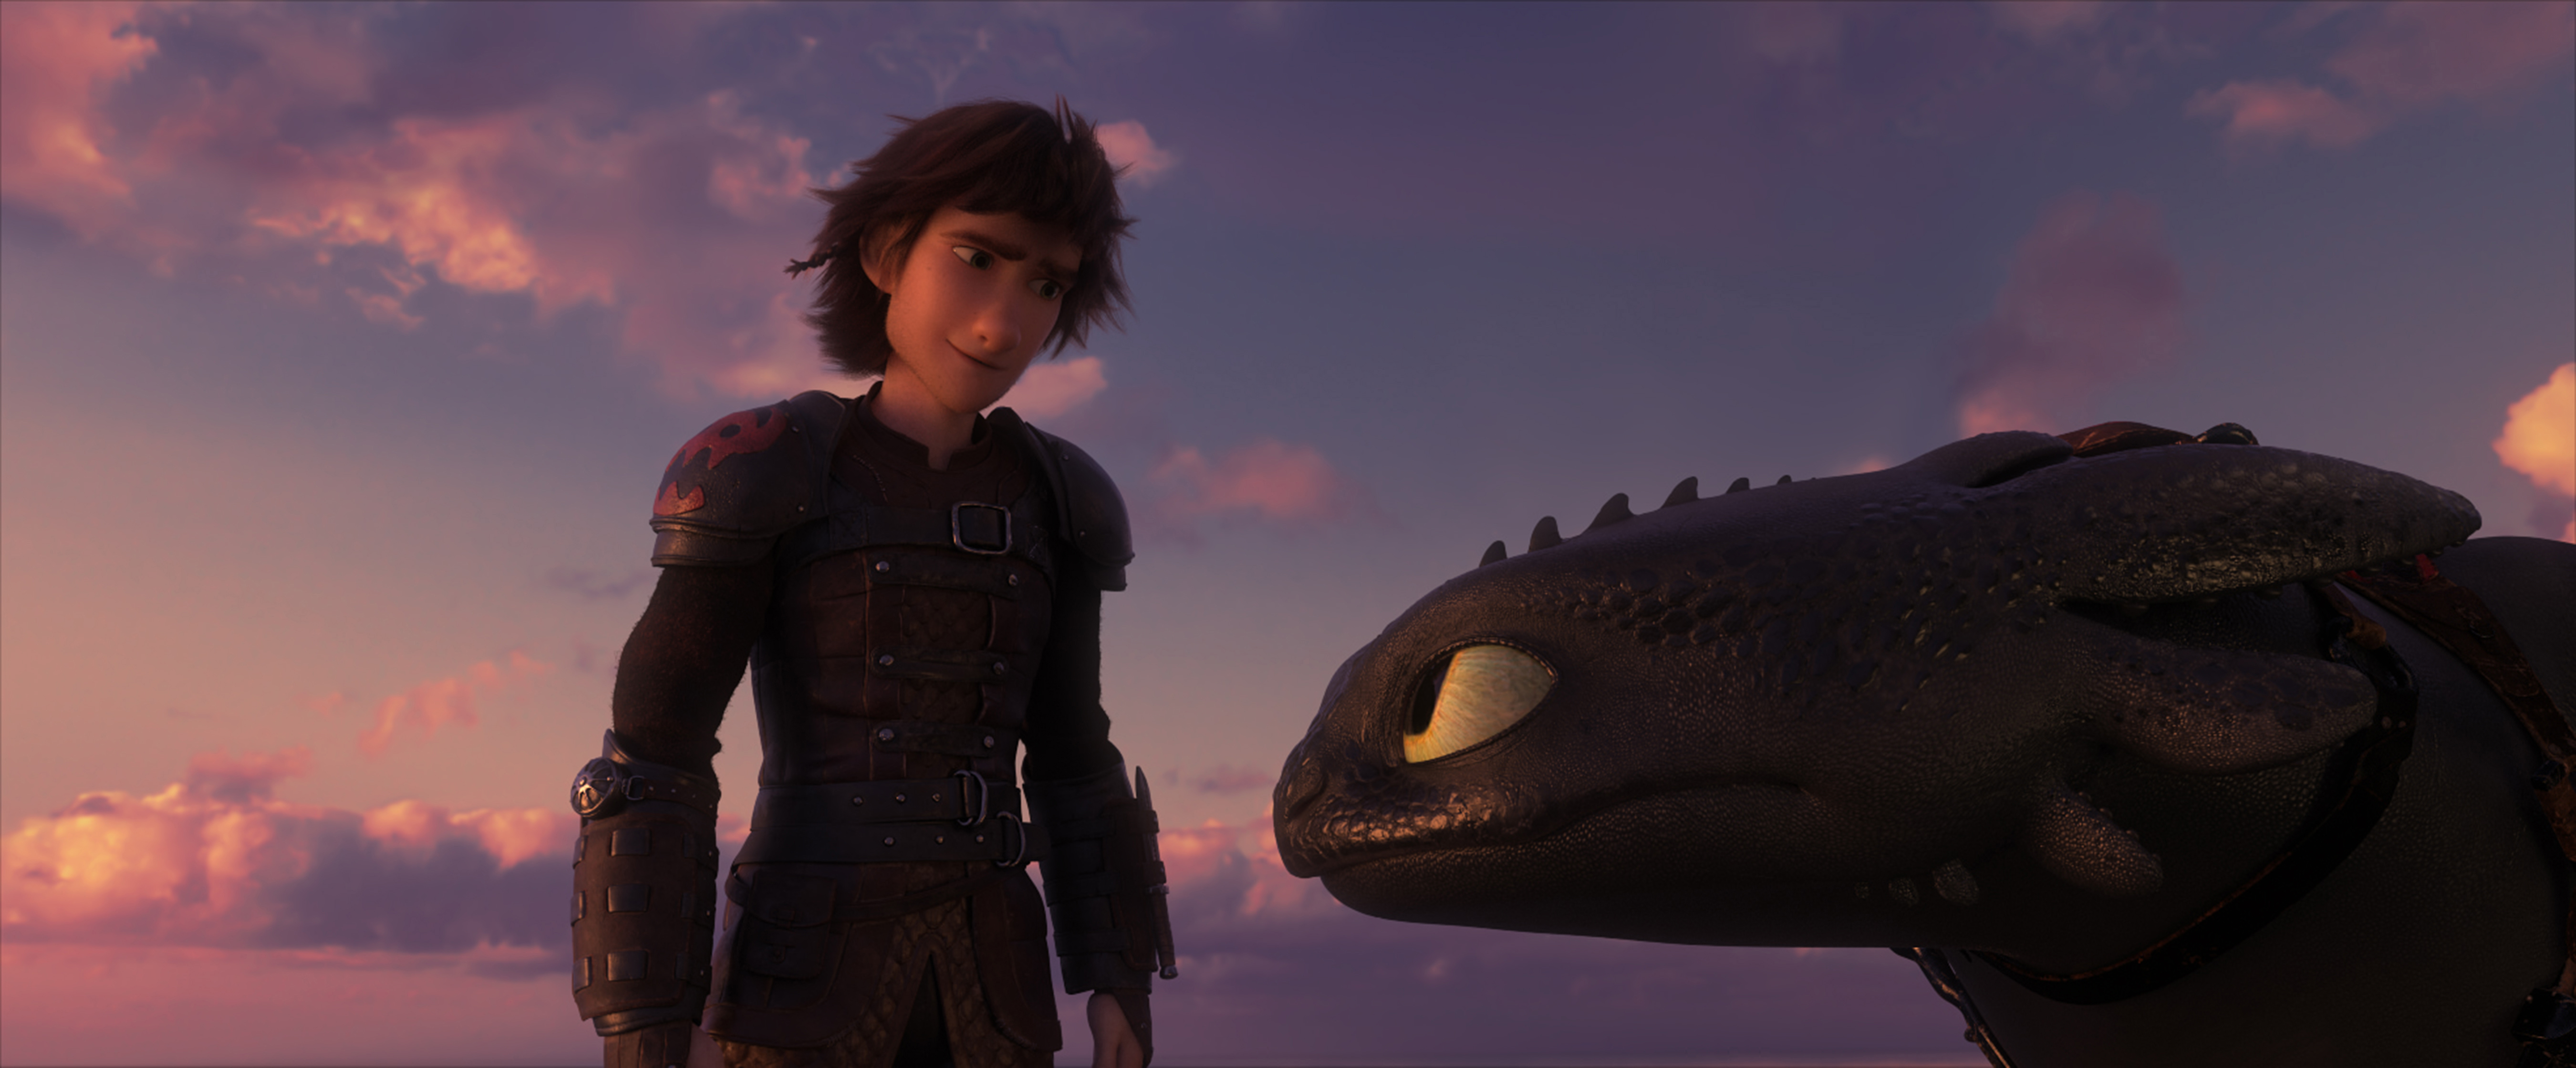 Hiccup (Jay Baruchel) and his Night Fury dragon Toothless in DreamWorks Animation's How To Train Your Dragon: The Hidden World, directed by Dean DeBlois.